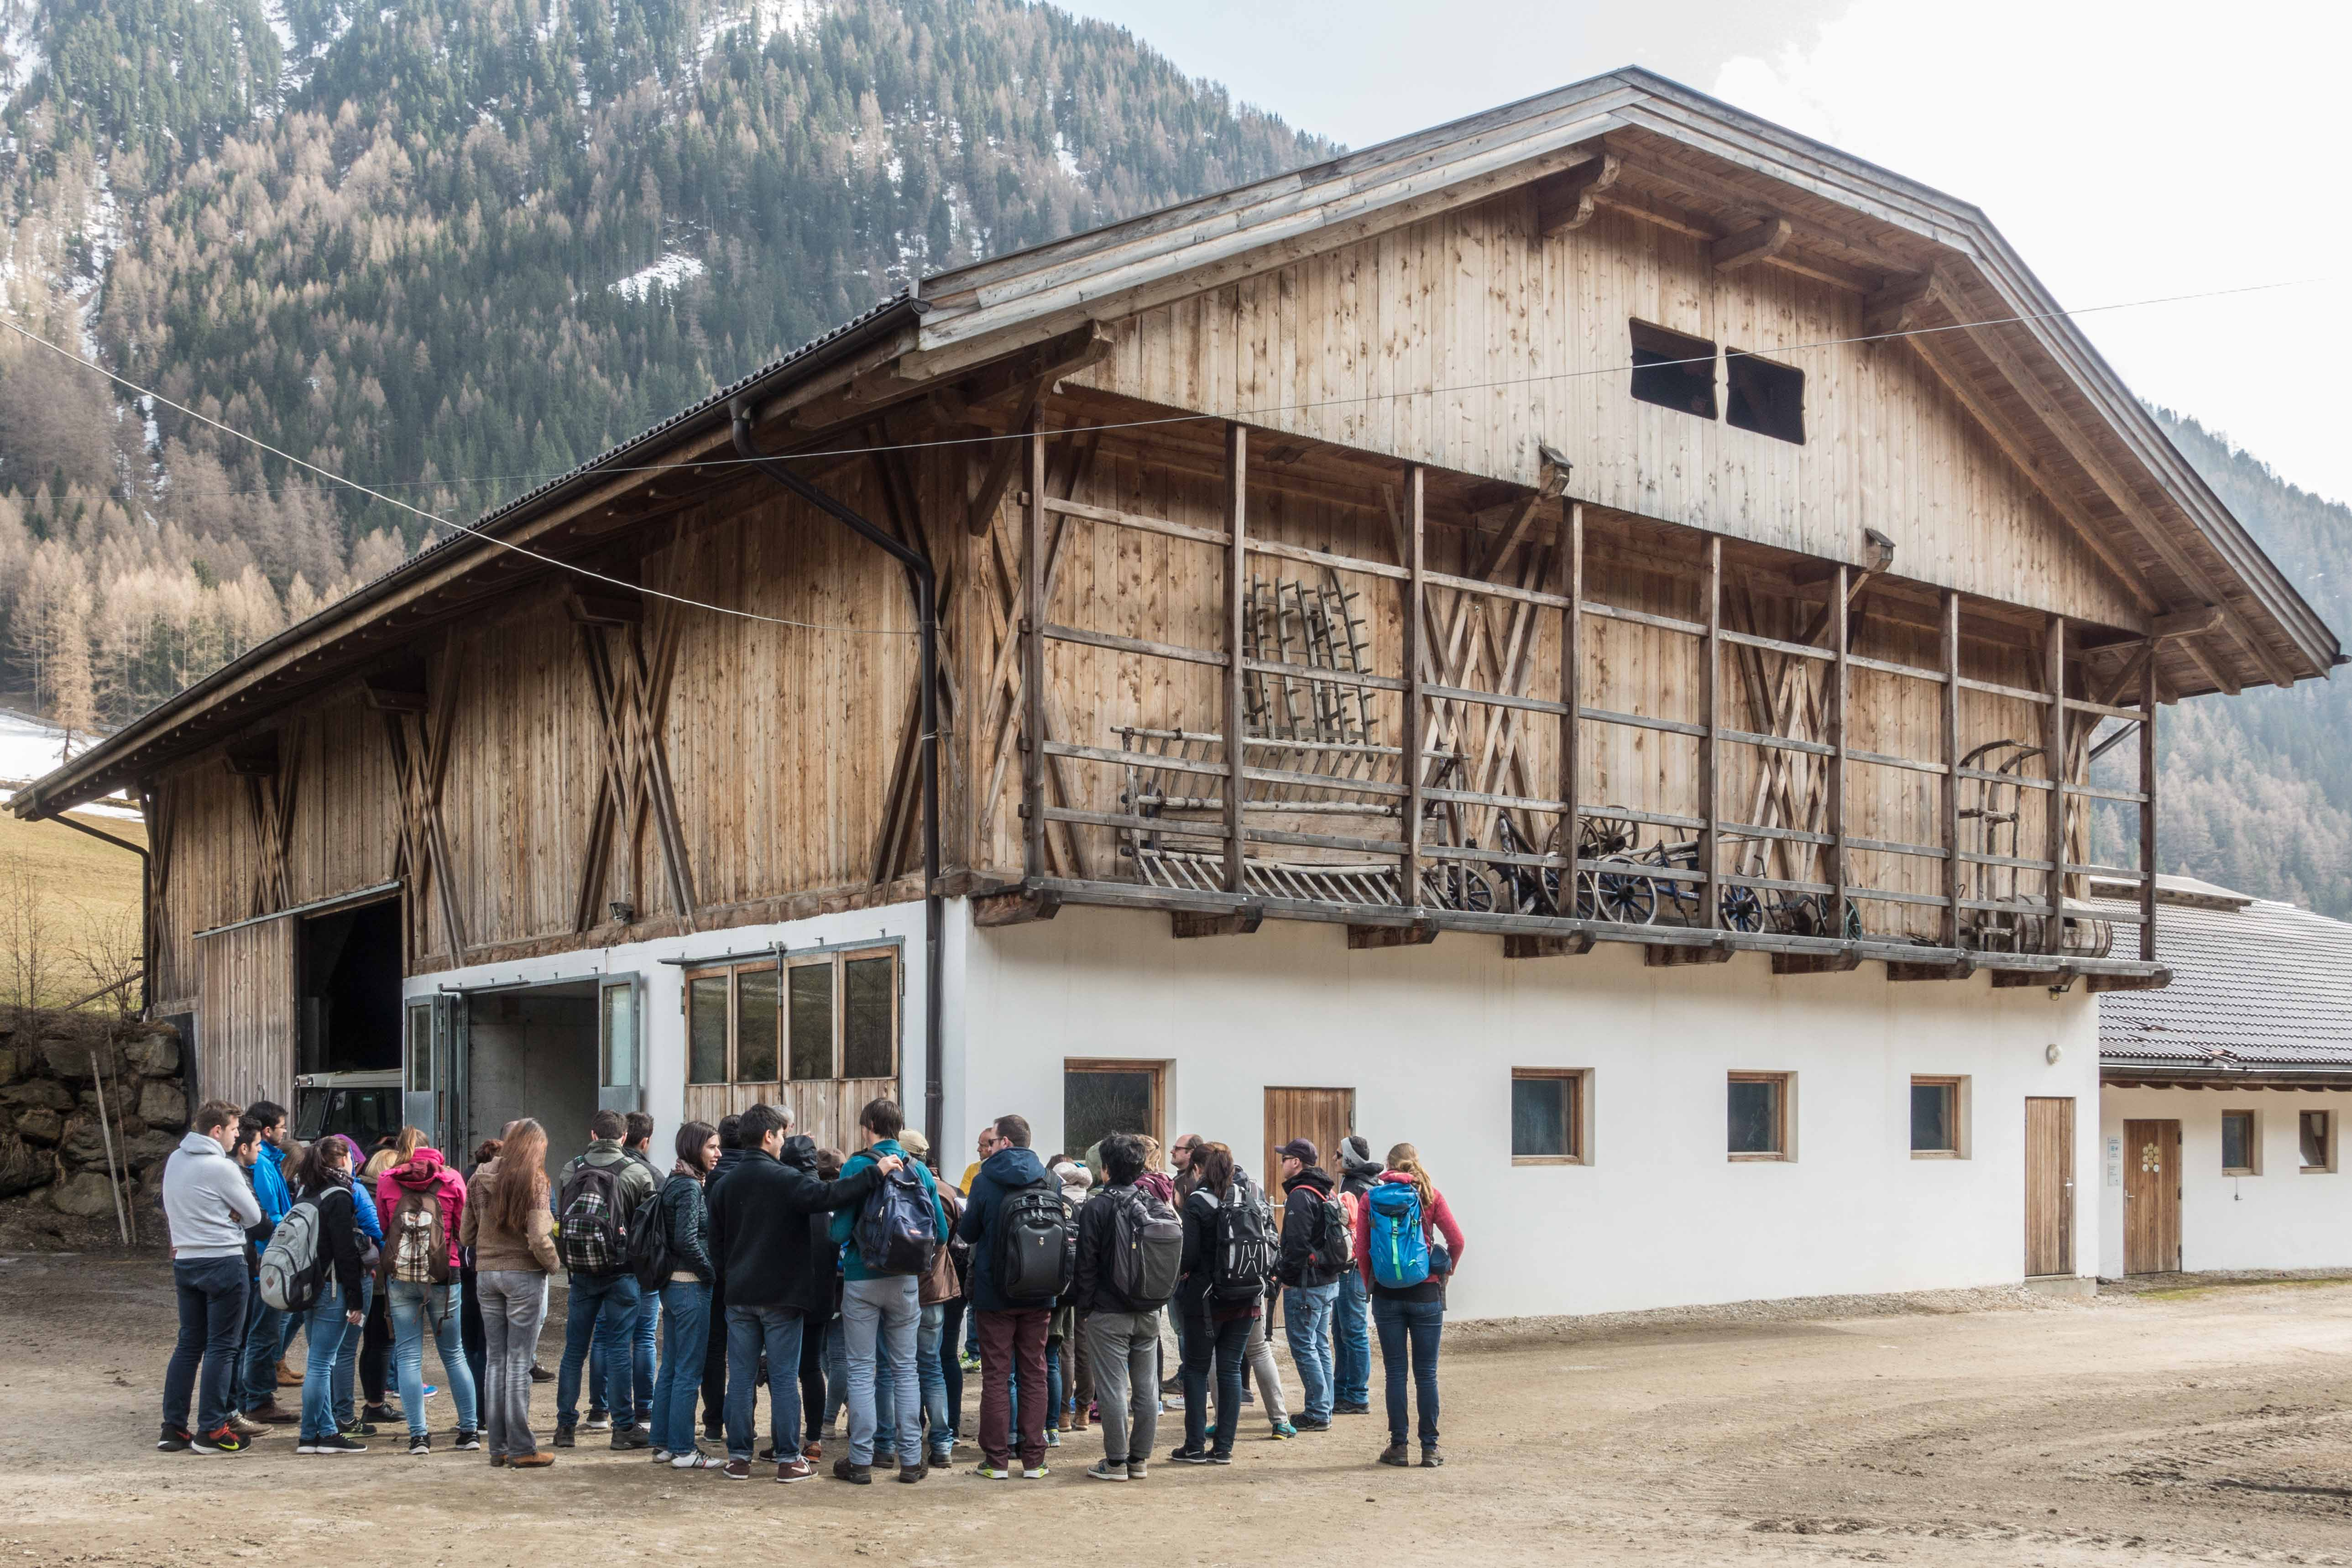 IMLA Main Project I in Italy: excursion to South Tyrol - Picture 5 © Prof. Fritz Auweck